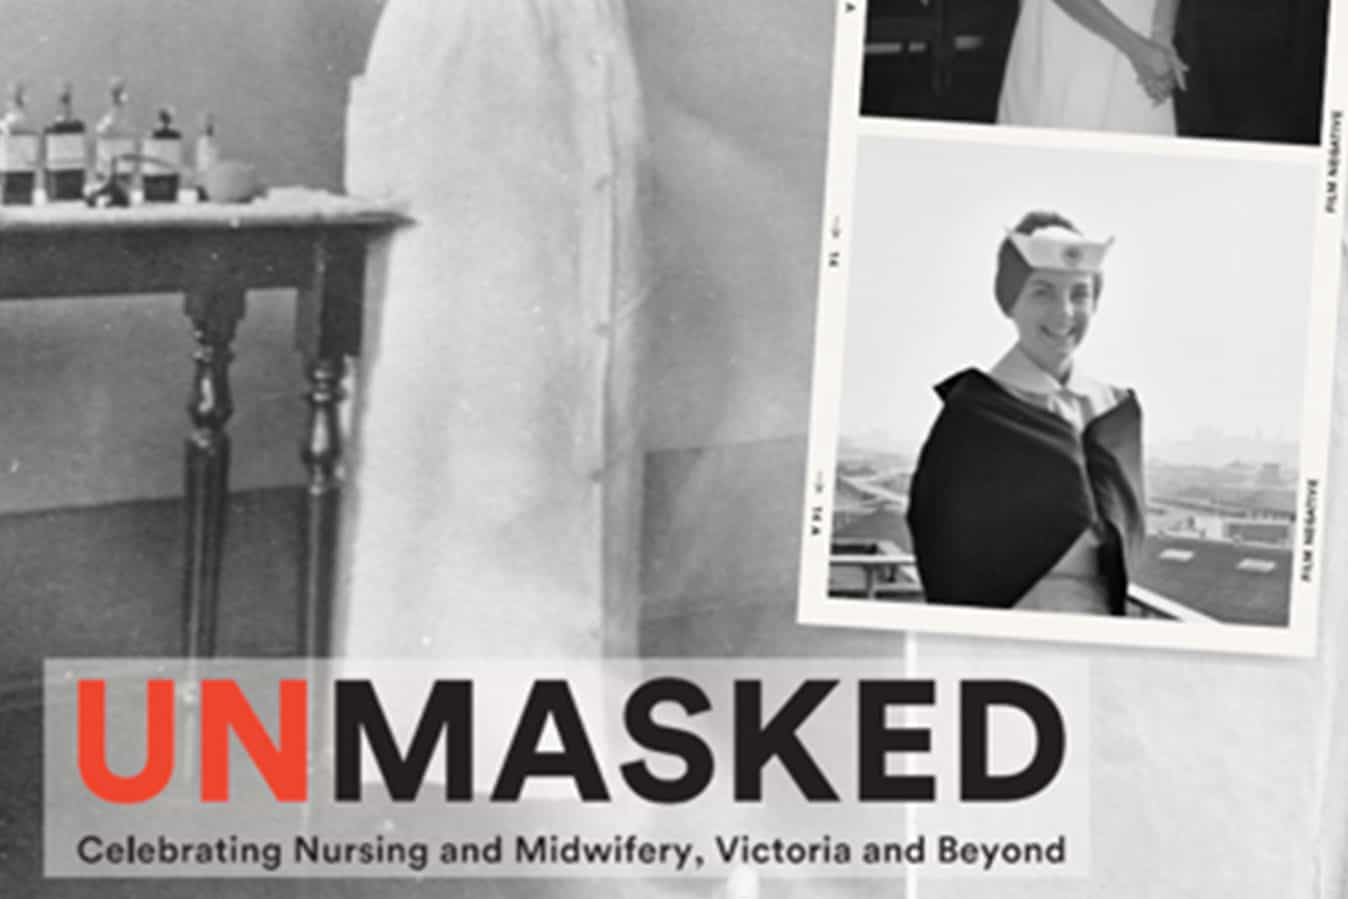 Unmasked: Celebrating Nursing and Midwifery, Victoria and beyond